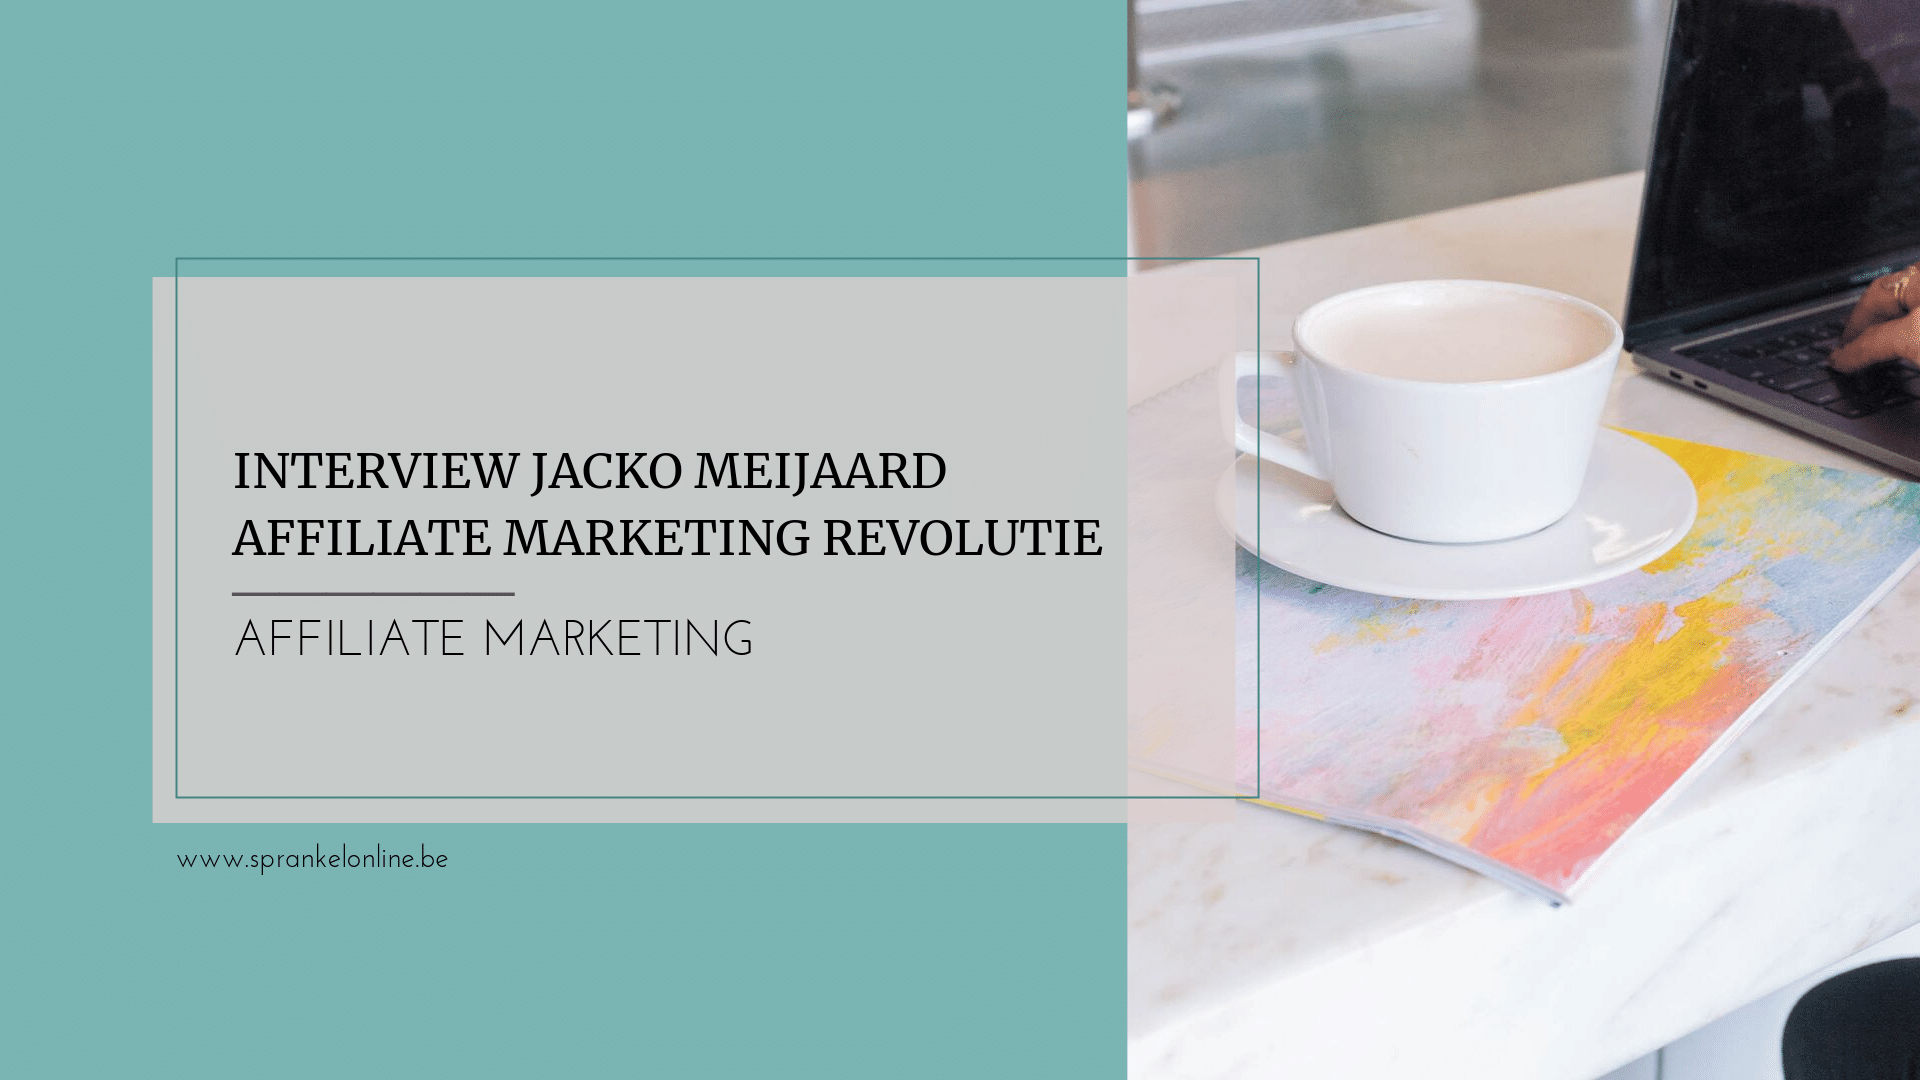 Jacko Meijaard Affiliate Marketing Revolutie